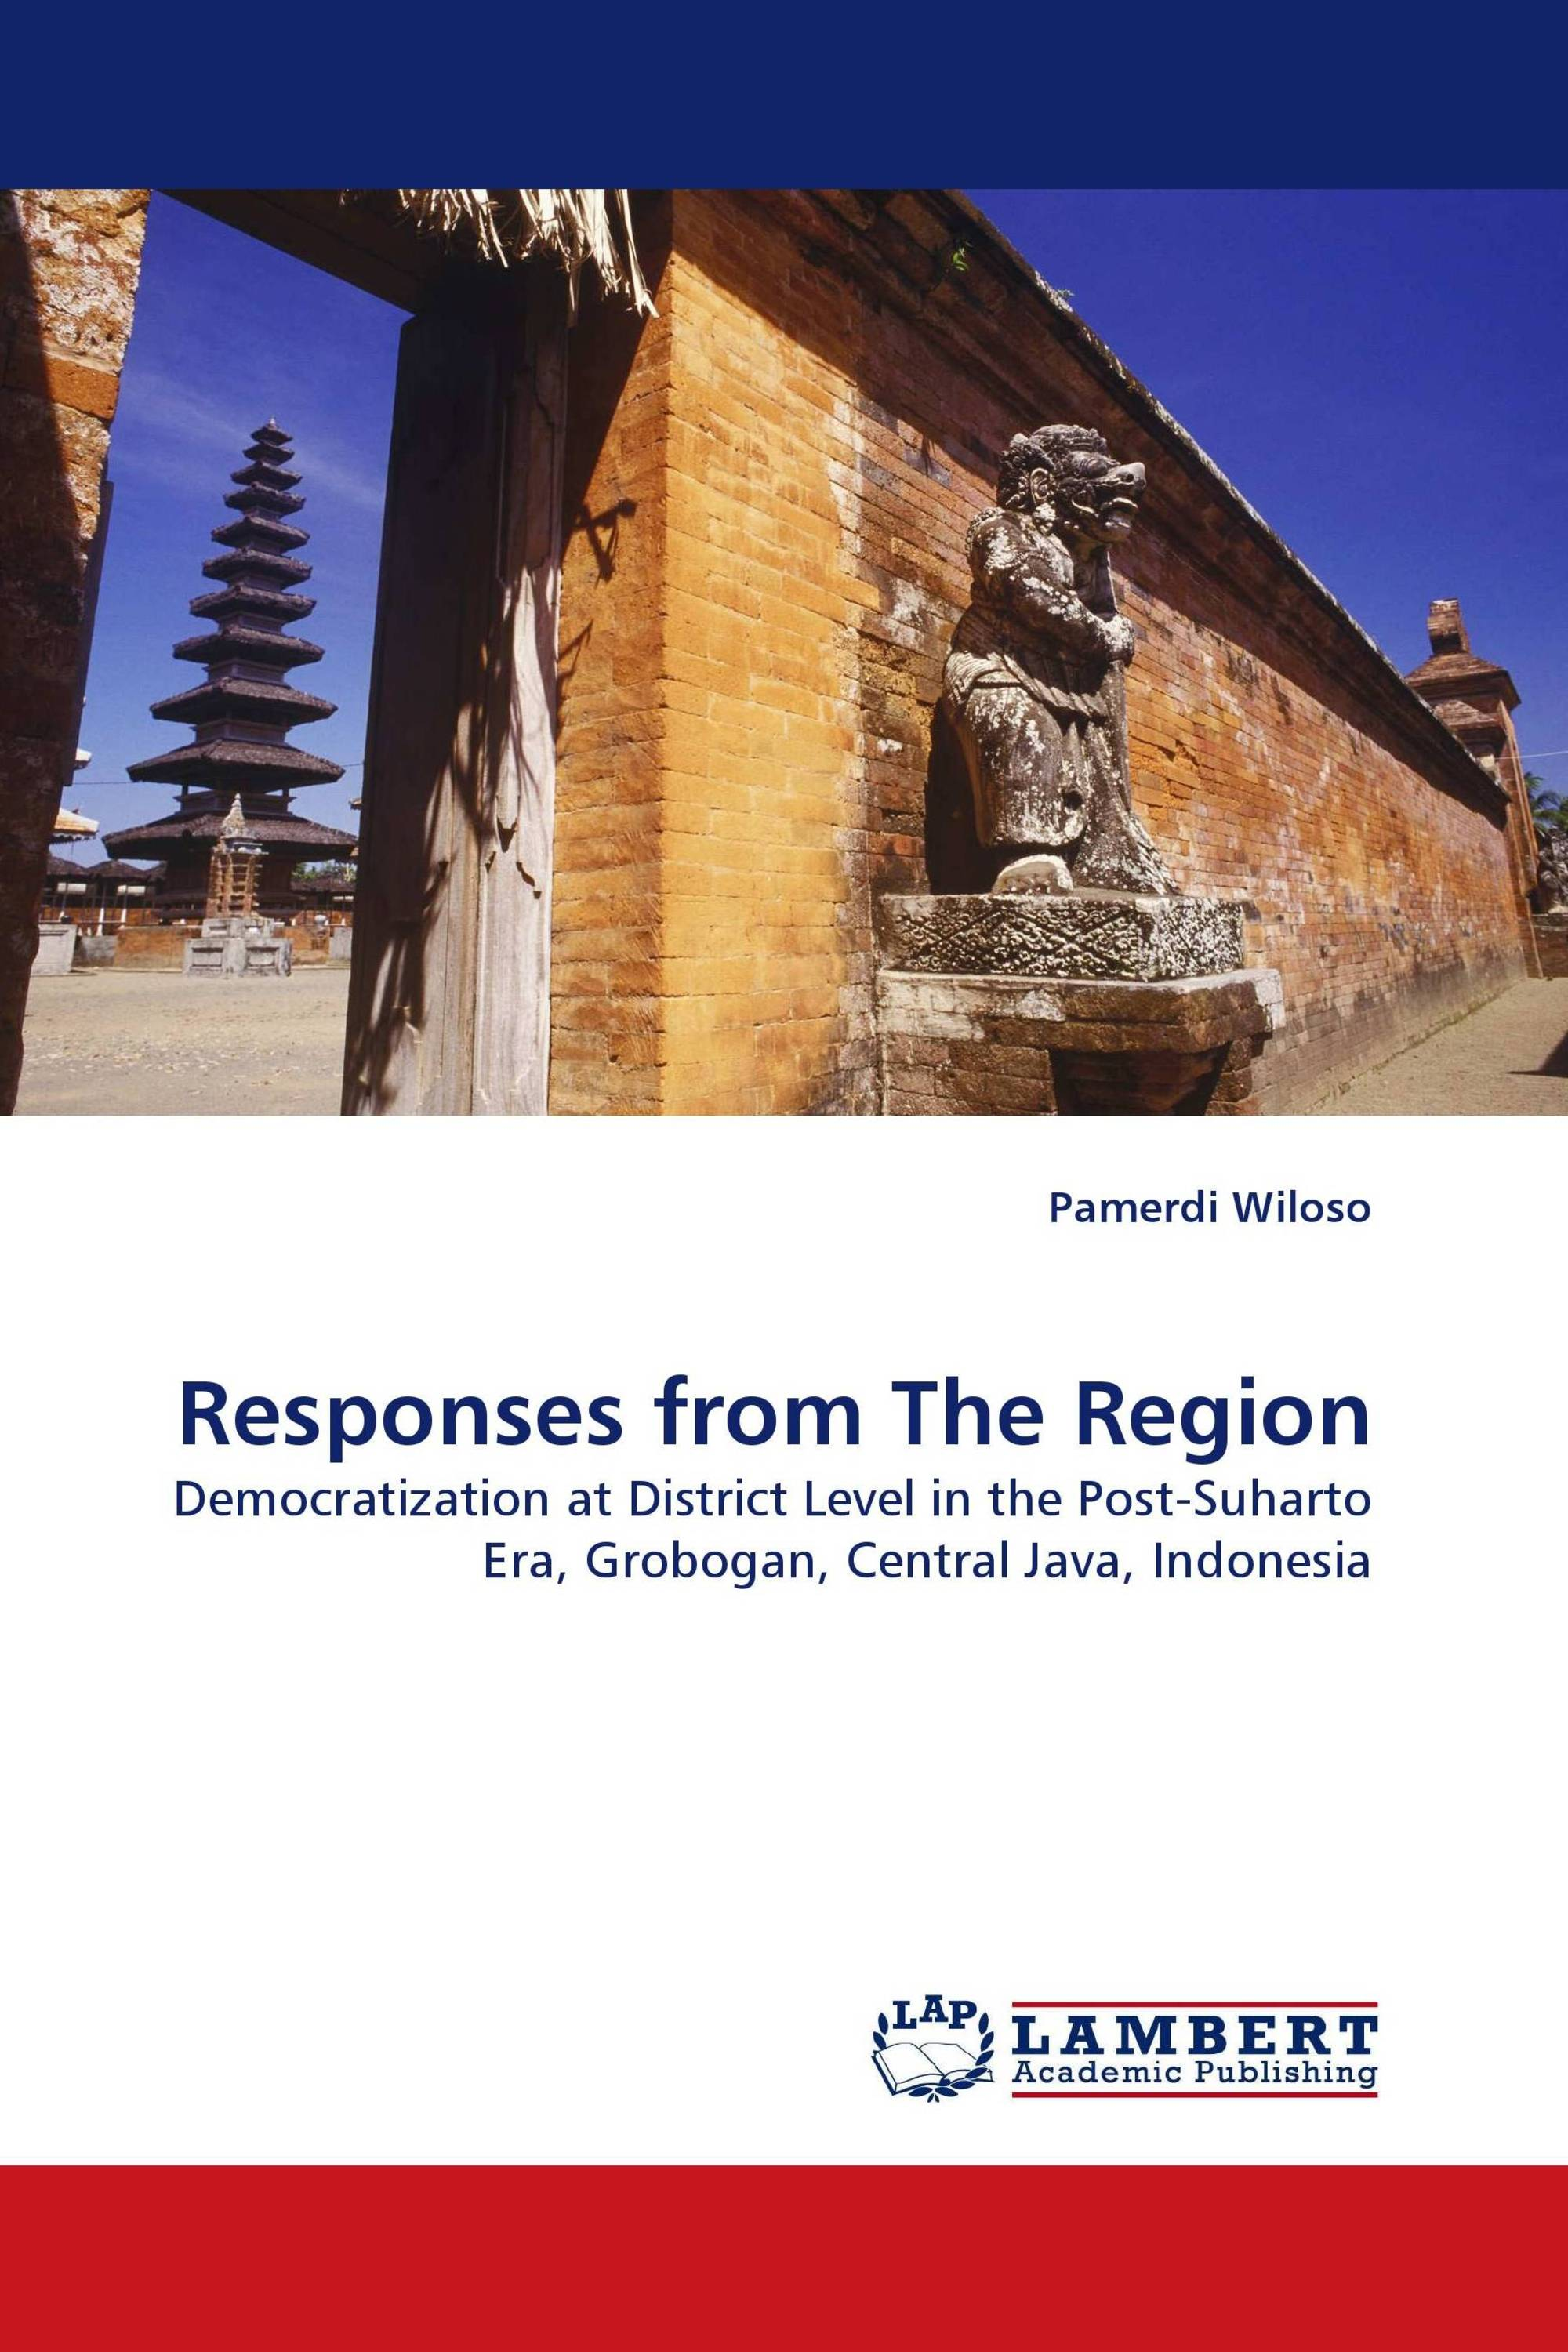 Responses from The Region